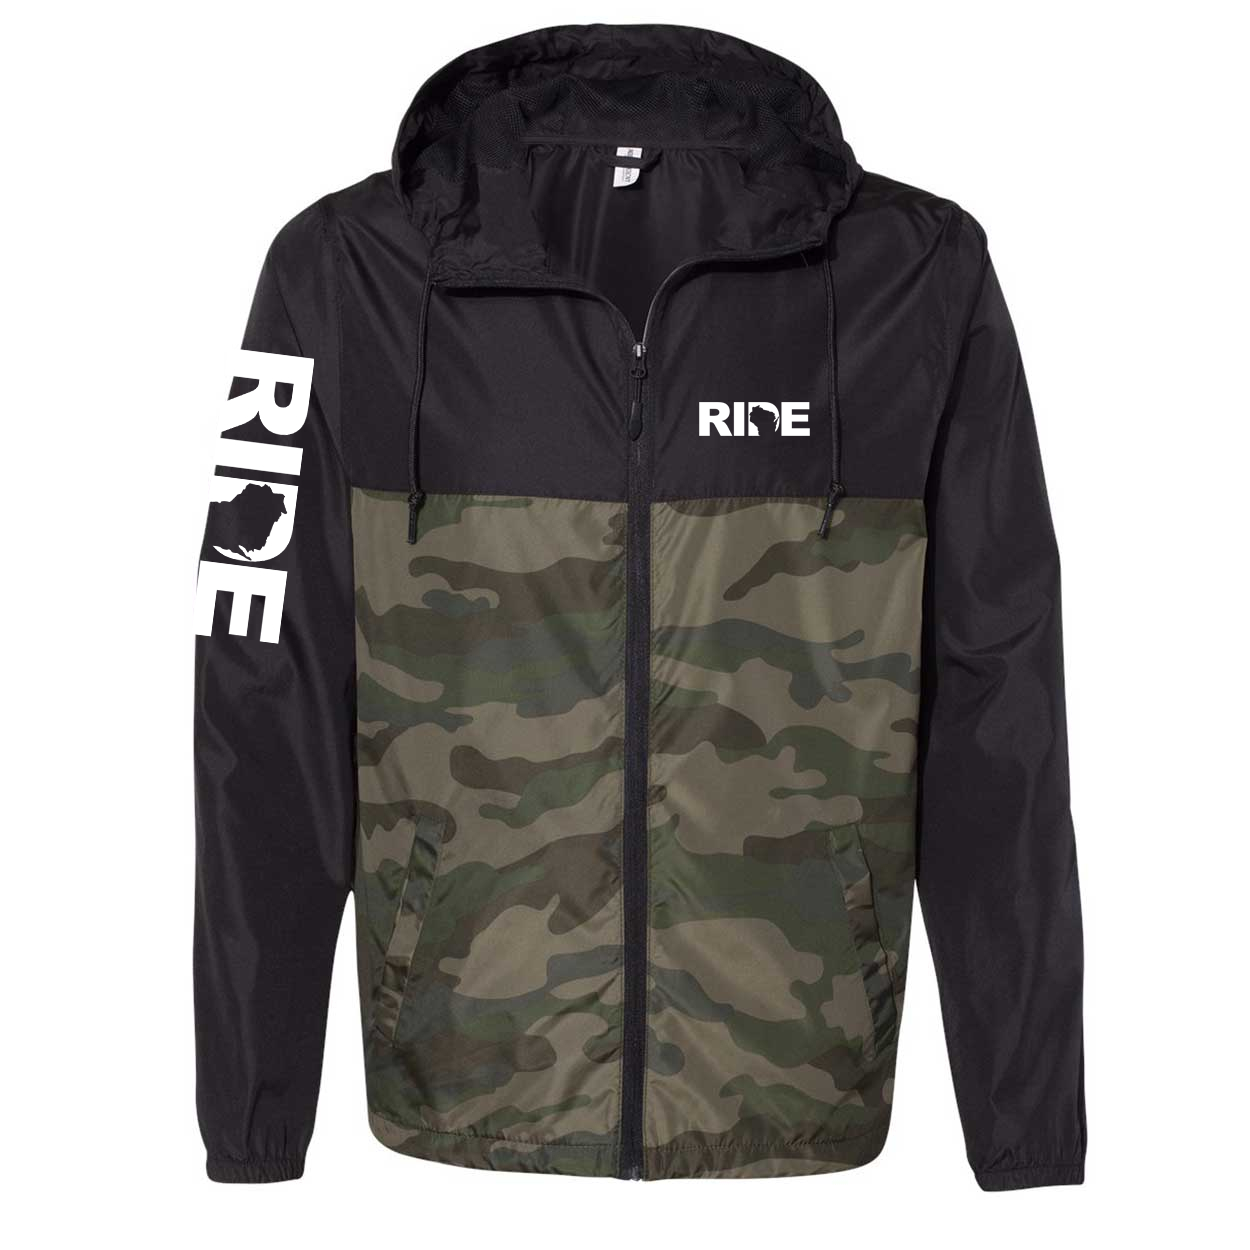 Ride Wisconsin Classic Lightweight Windbreaker Black/Forest Camo (White Logo)